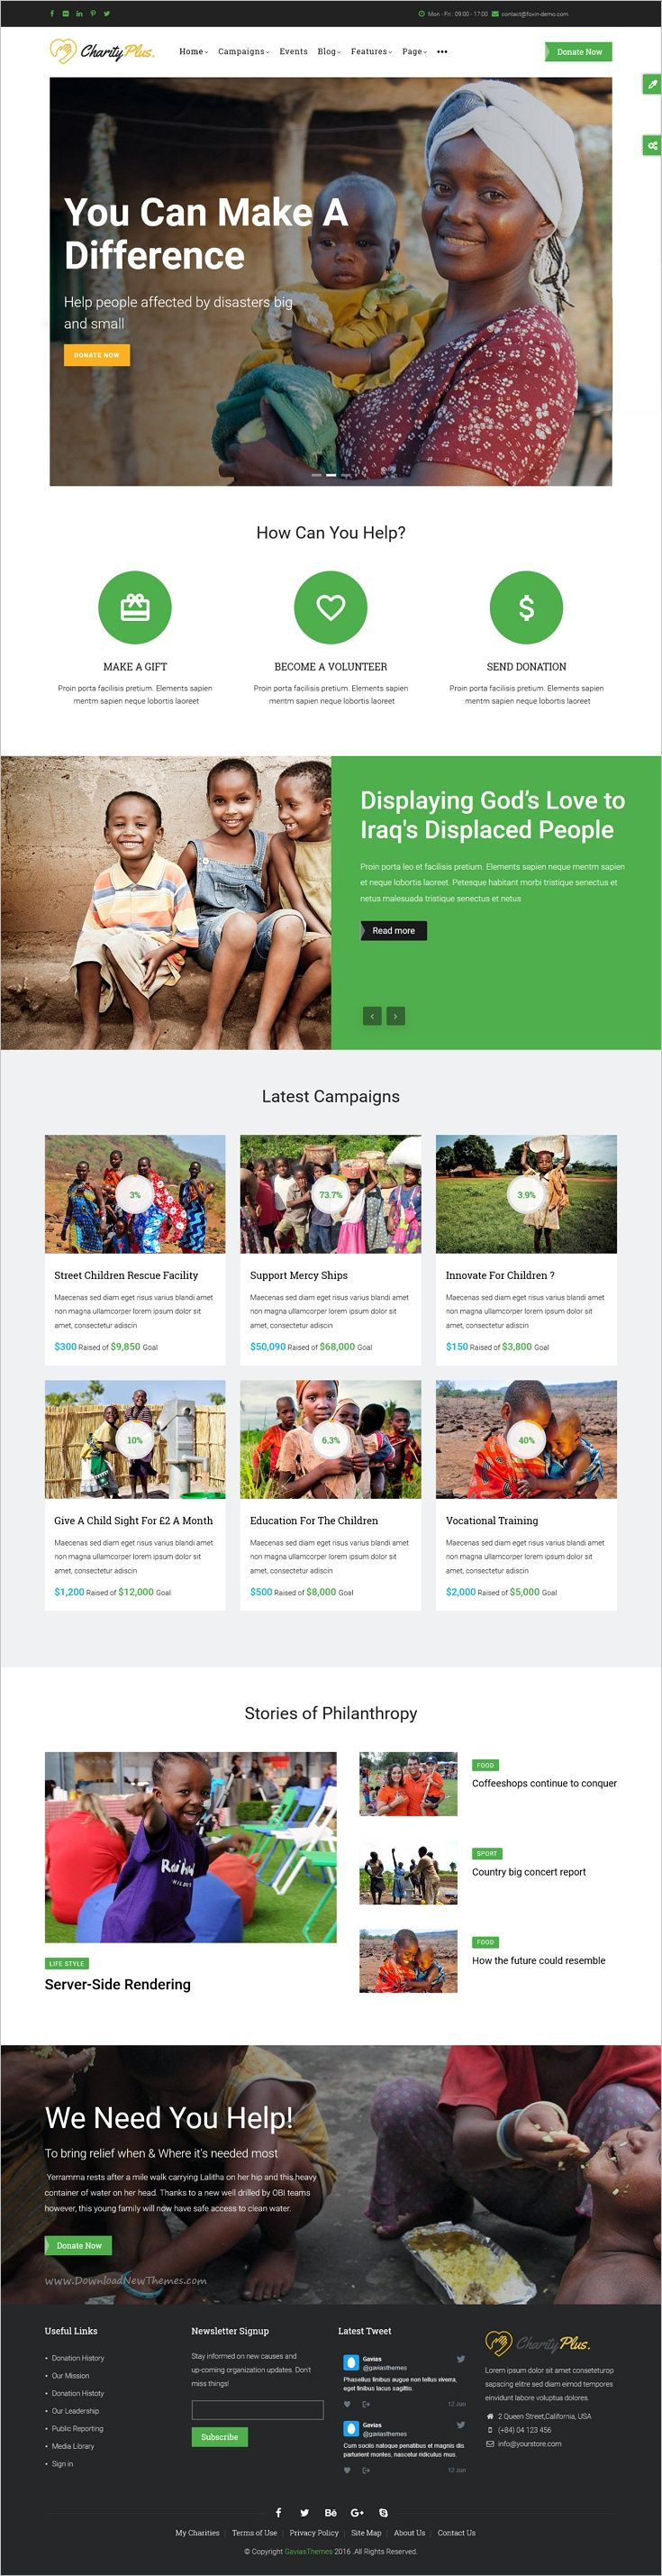 CharityPlus is a wonderful responsive 5in1 #Drupal 8 Template for #webdev Multipurpose #Nonprofit Charity #Organization websites download now➩ https://themeforest.net/item/charityplus-multipurpose-nonprofit-charity-organization-drupal-8-template/19127475?ref=Datasata